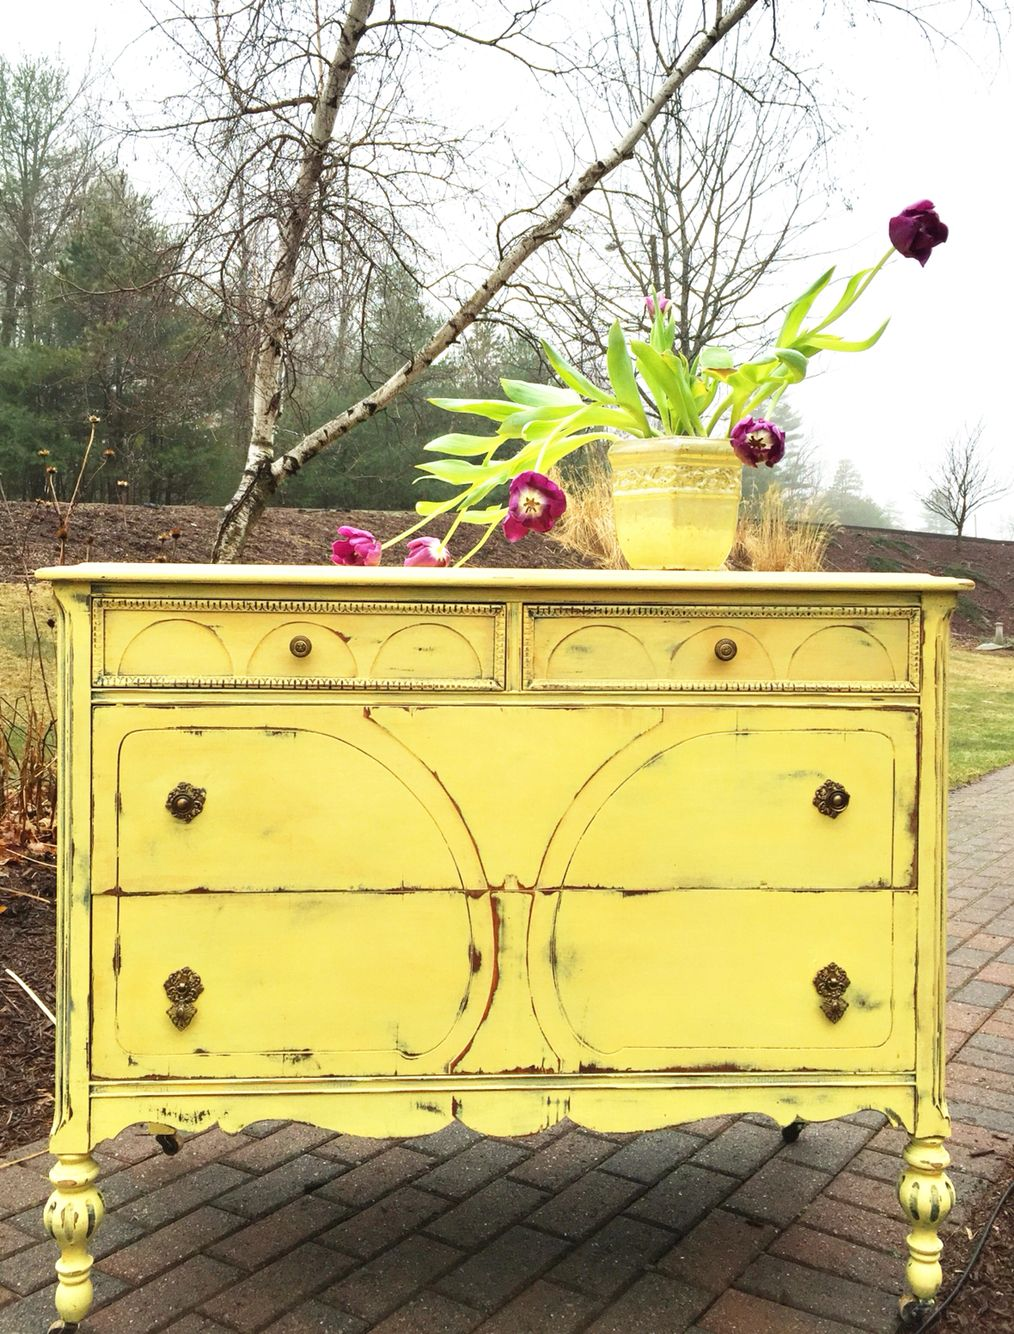 Painted With Waverly Chalkpaint In Maize Muebles De Madera De Madera Madera